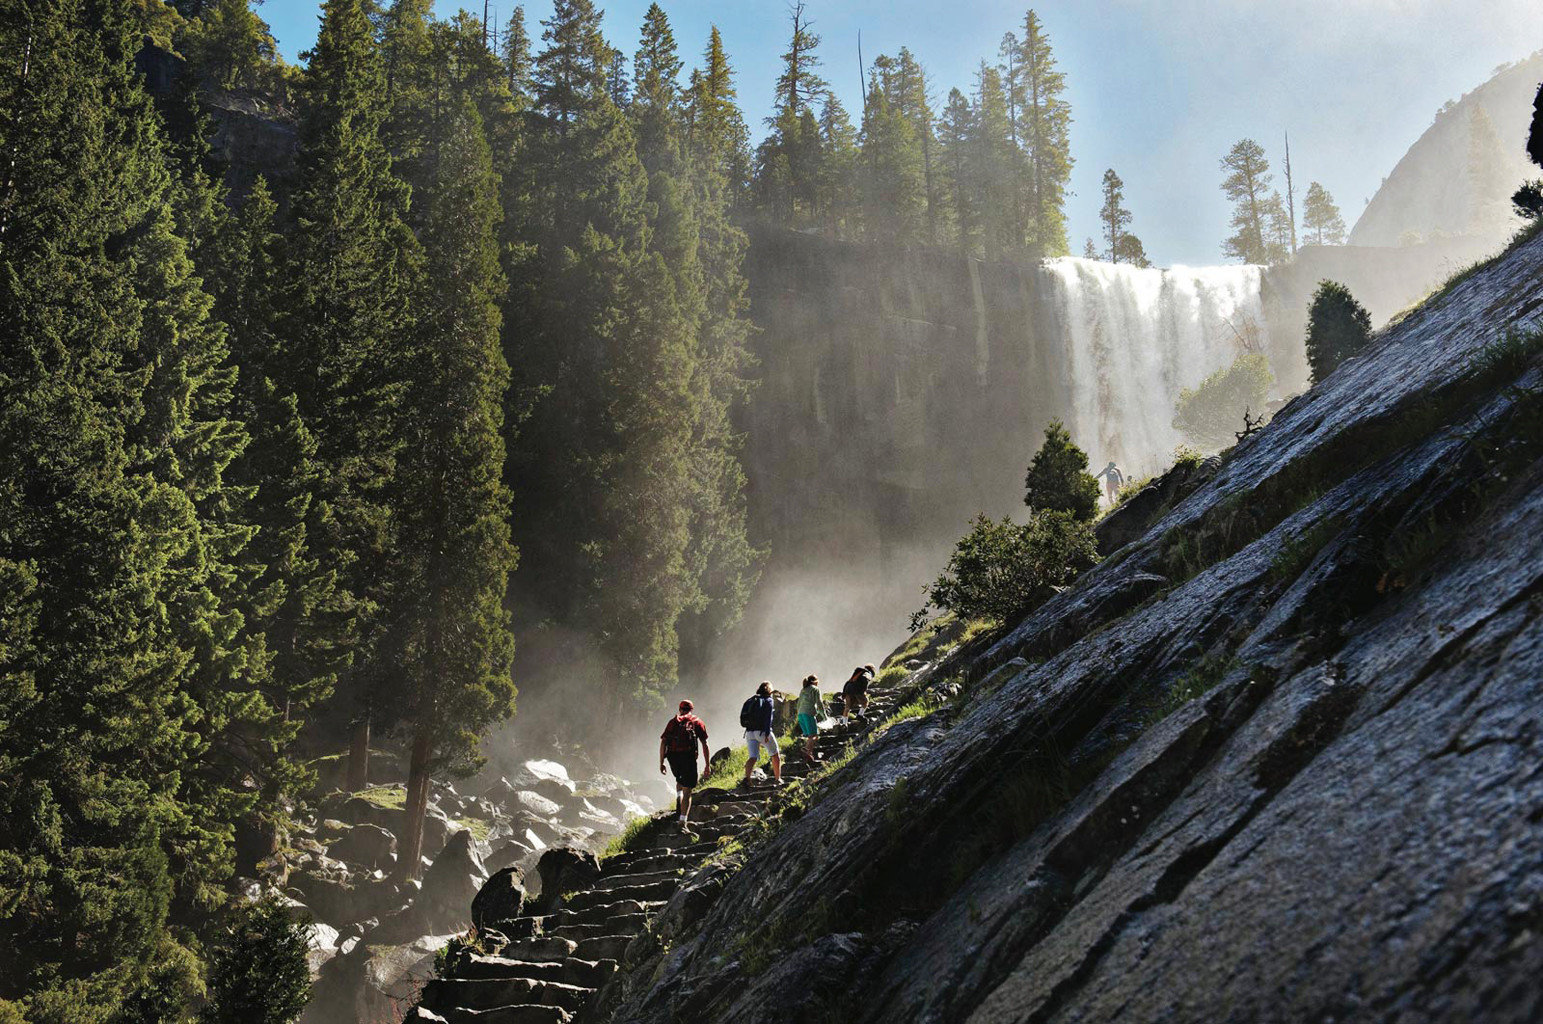 Adventure Family Travel Forest Mountains National Parks Natural wonders Nature Outdoor Activities Outdoors Parks Play Scenic views Sport Trip Ideas tree Waterfall wilderness atmospheric phenomenon geological phenomenon River water feature mountain cliff mountain range terrain walking hillside